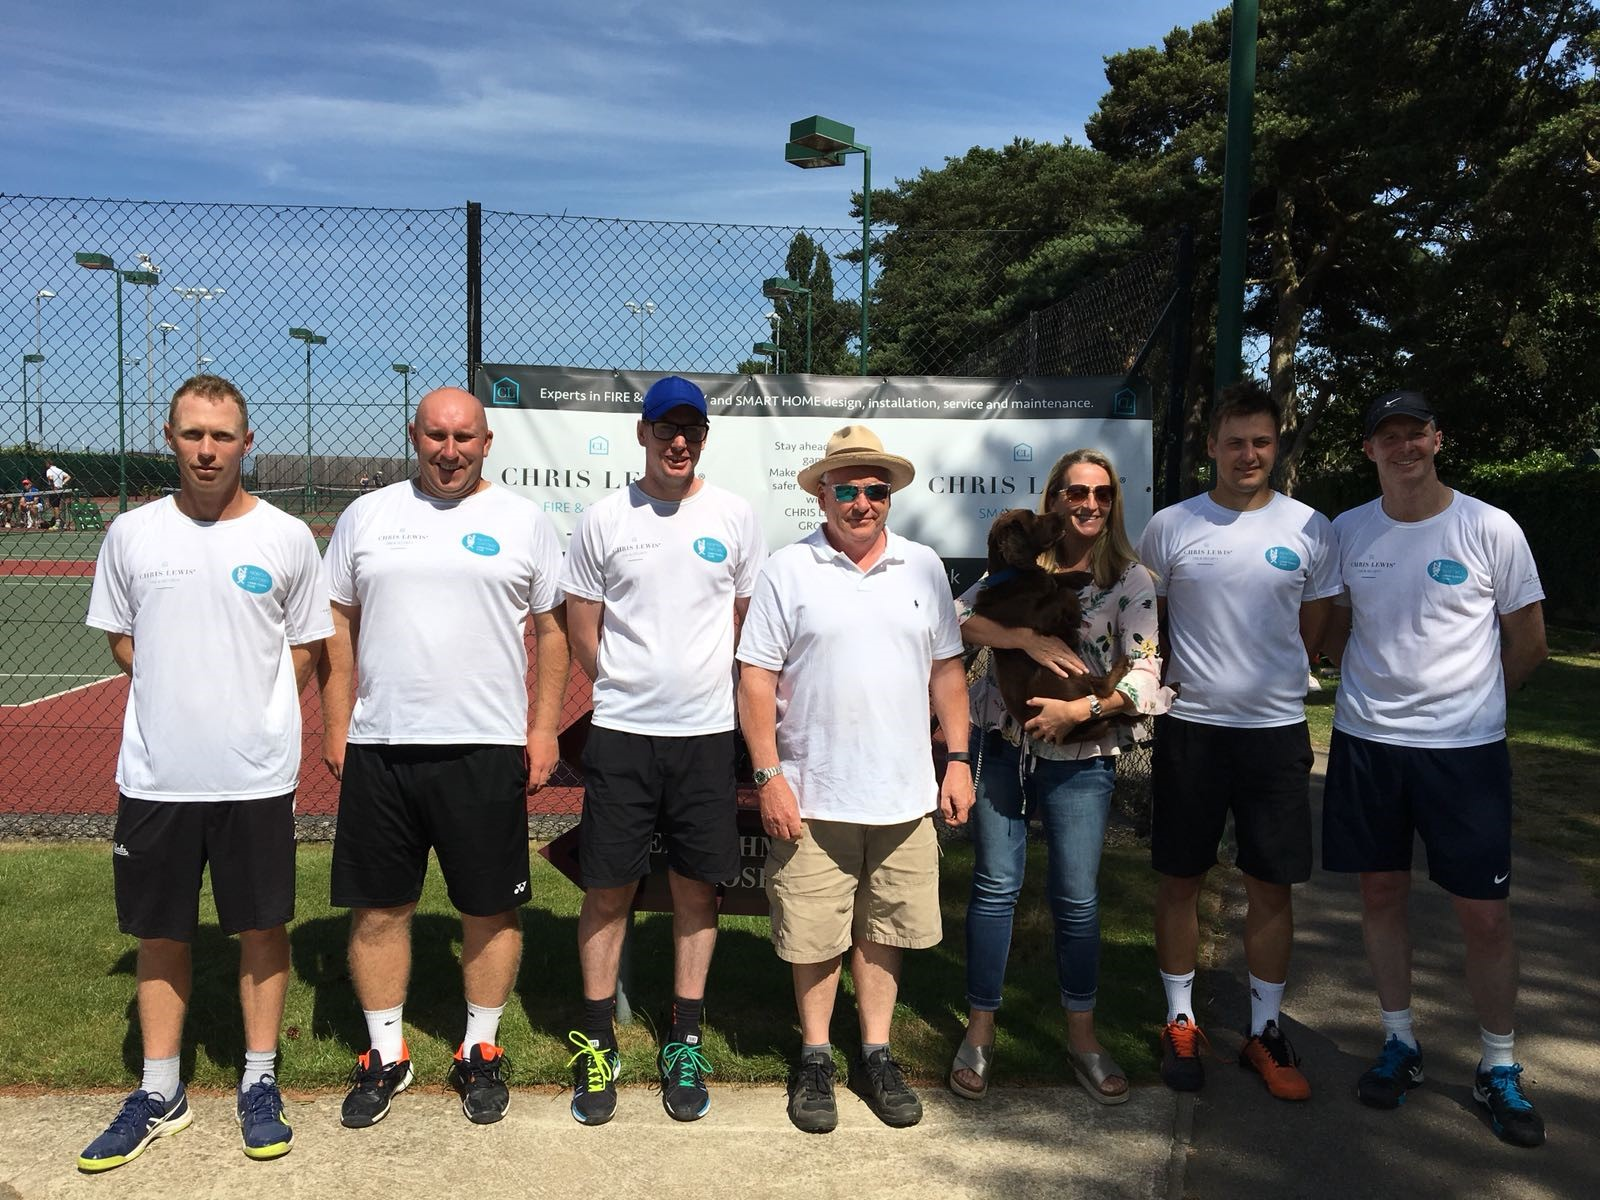 tennis sponsor Chris Lewis Fire and Security